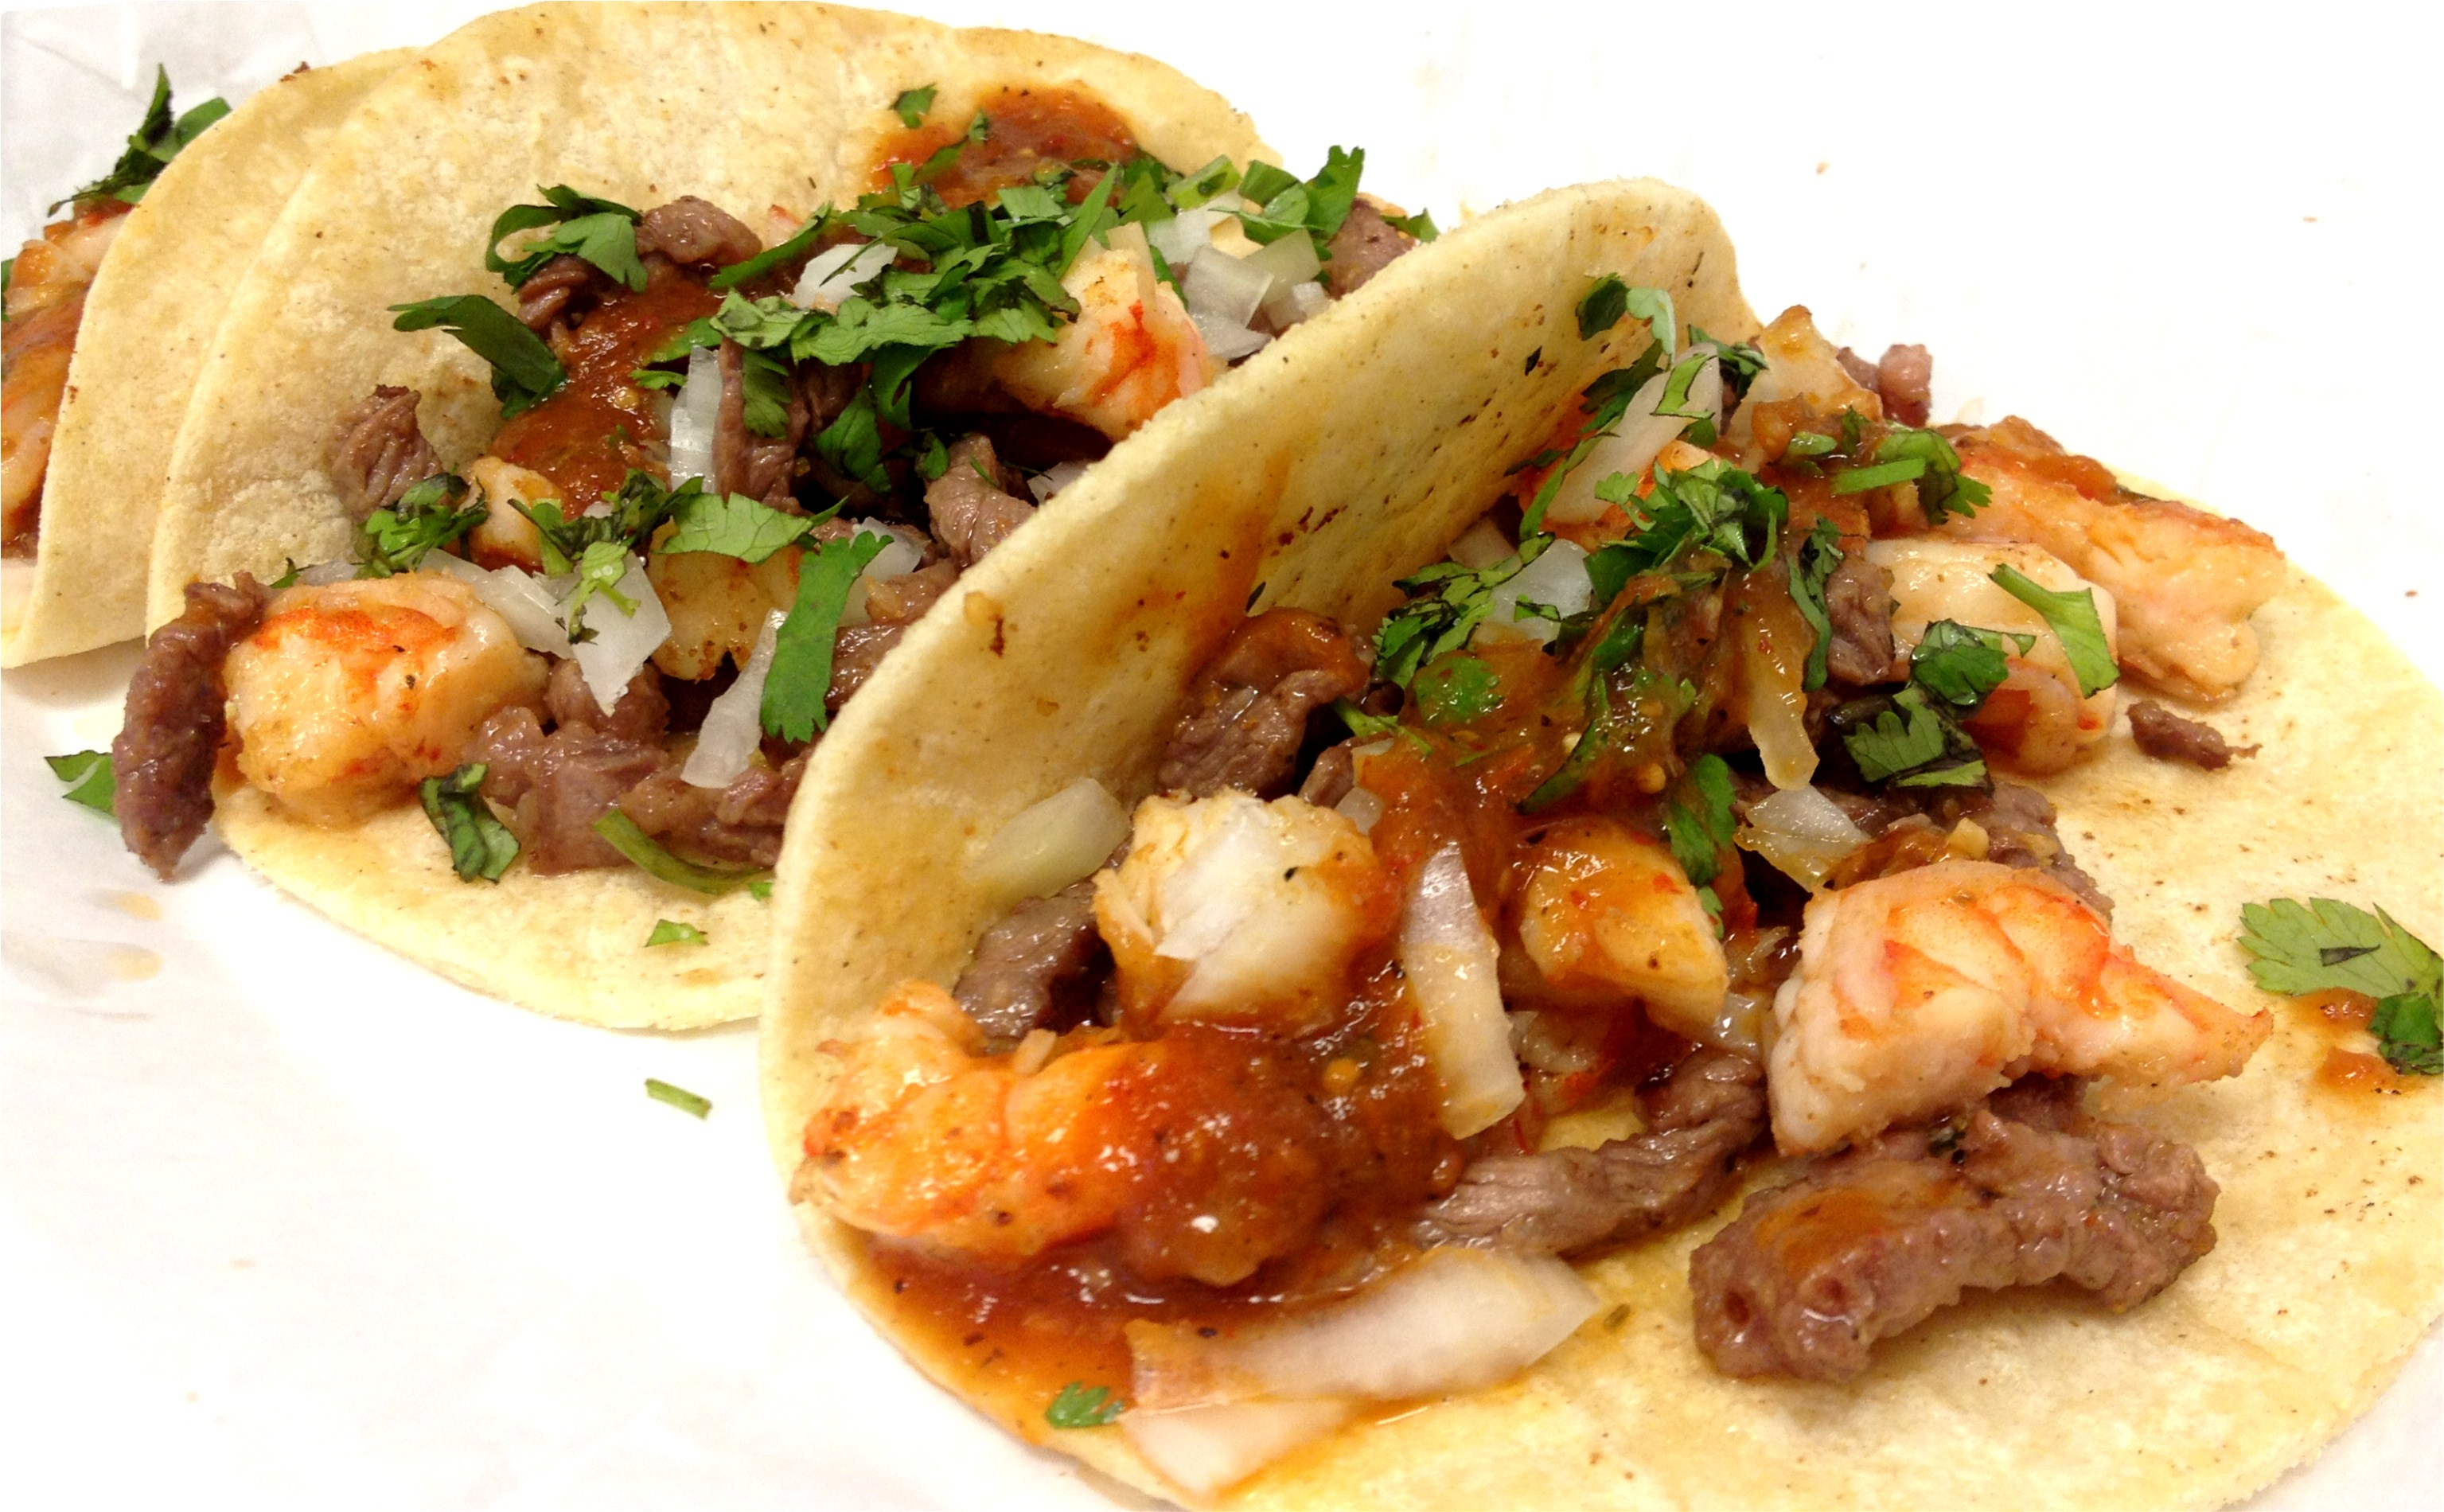 Shrimp Taco (Corn Tortilla)